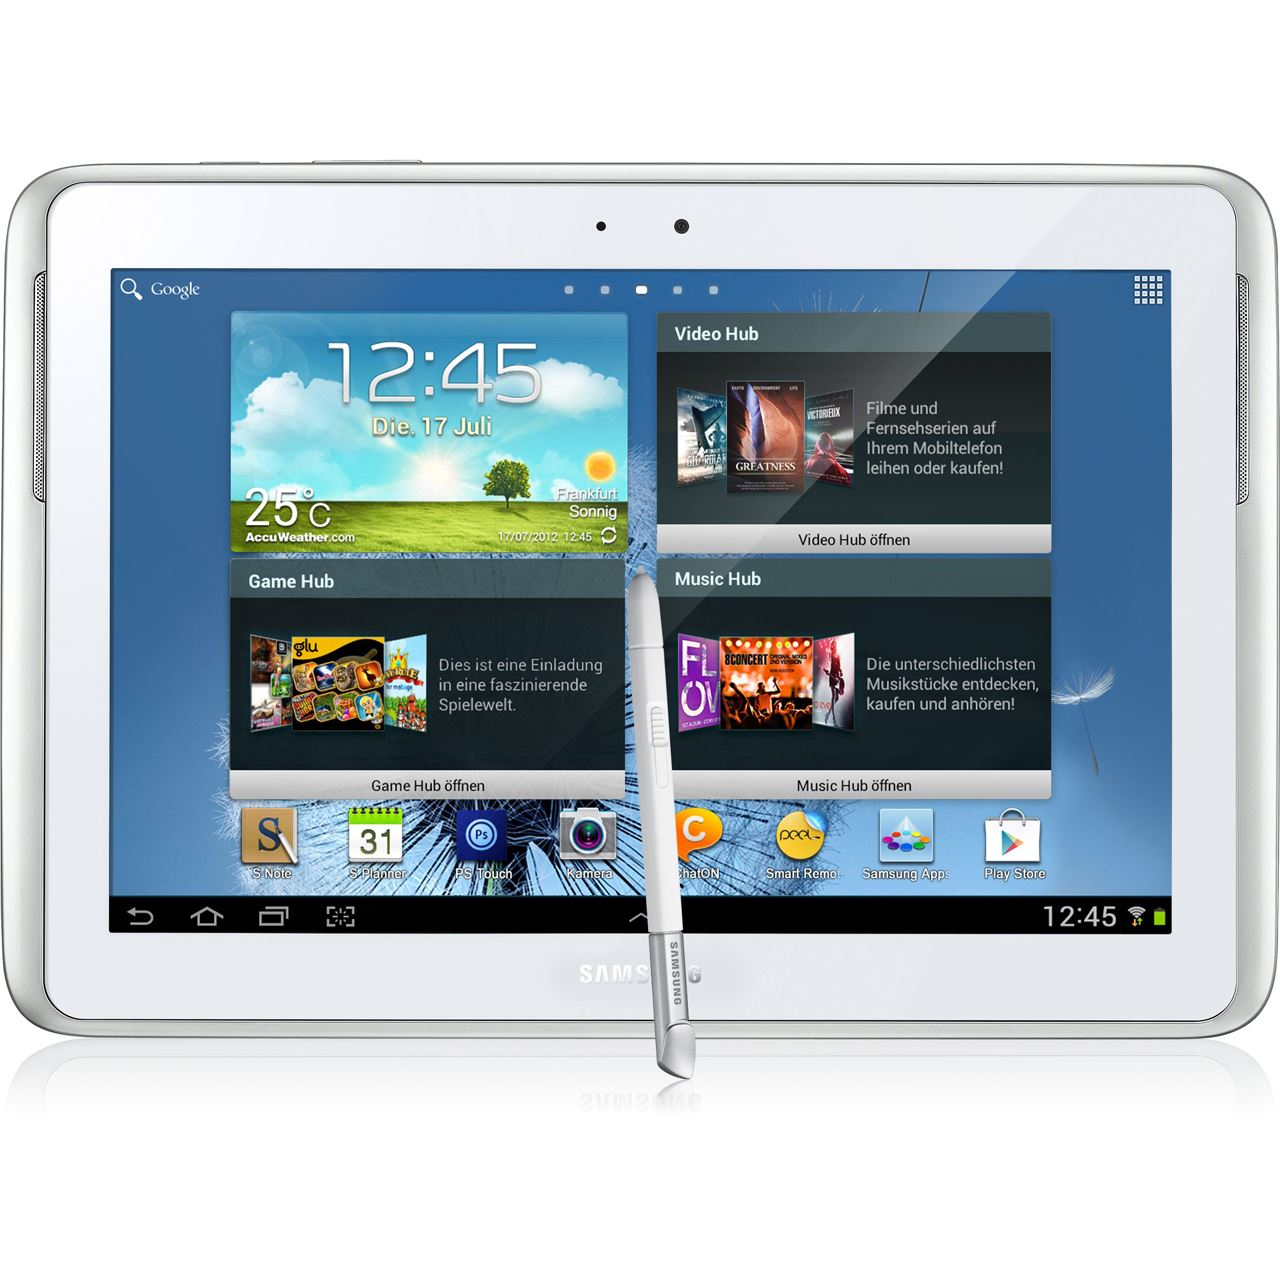 10-1-25-65cm-Samsung-Galaxy-Note-10-1-N8010-WiFi-Bluetooth-V4-0-16GB